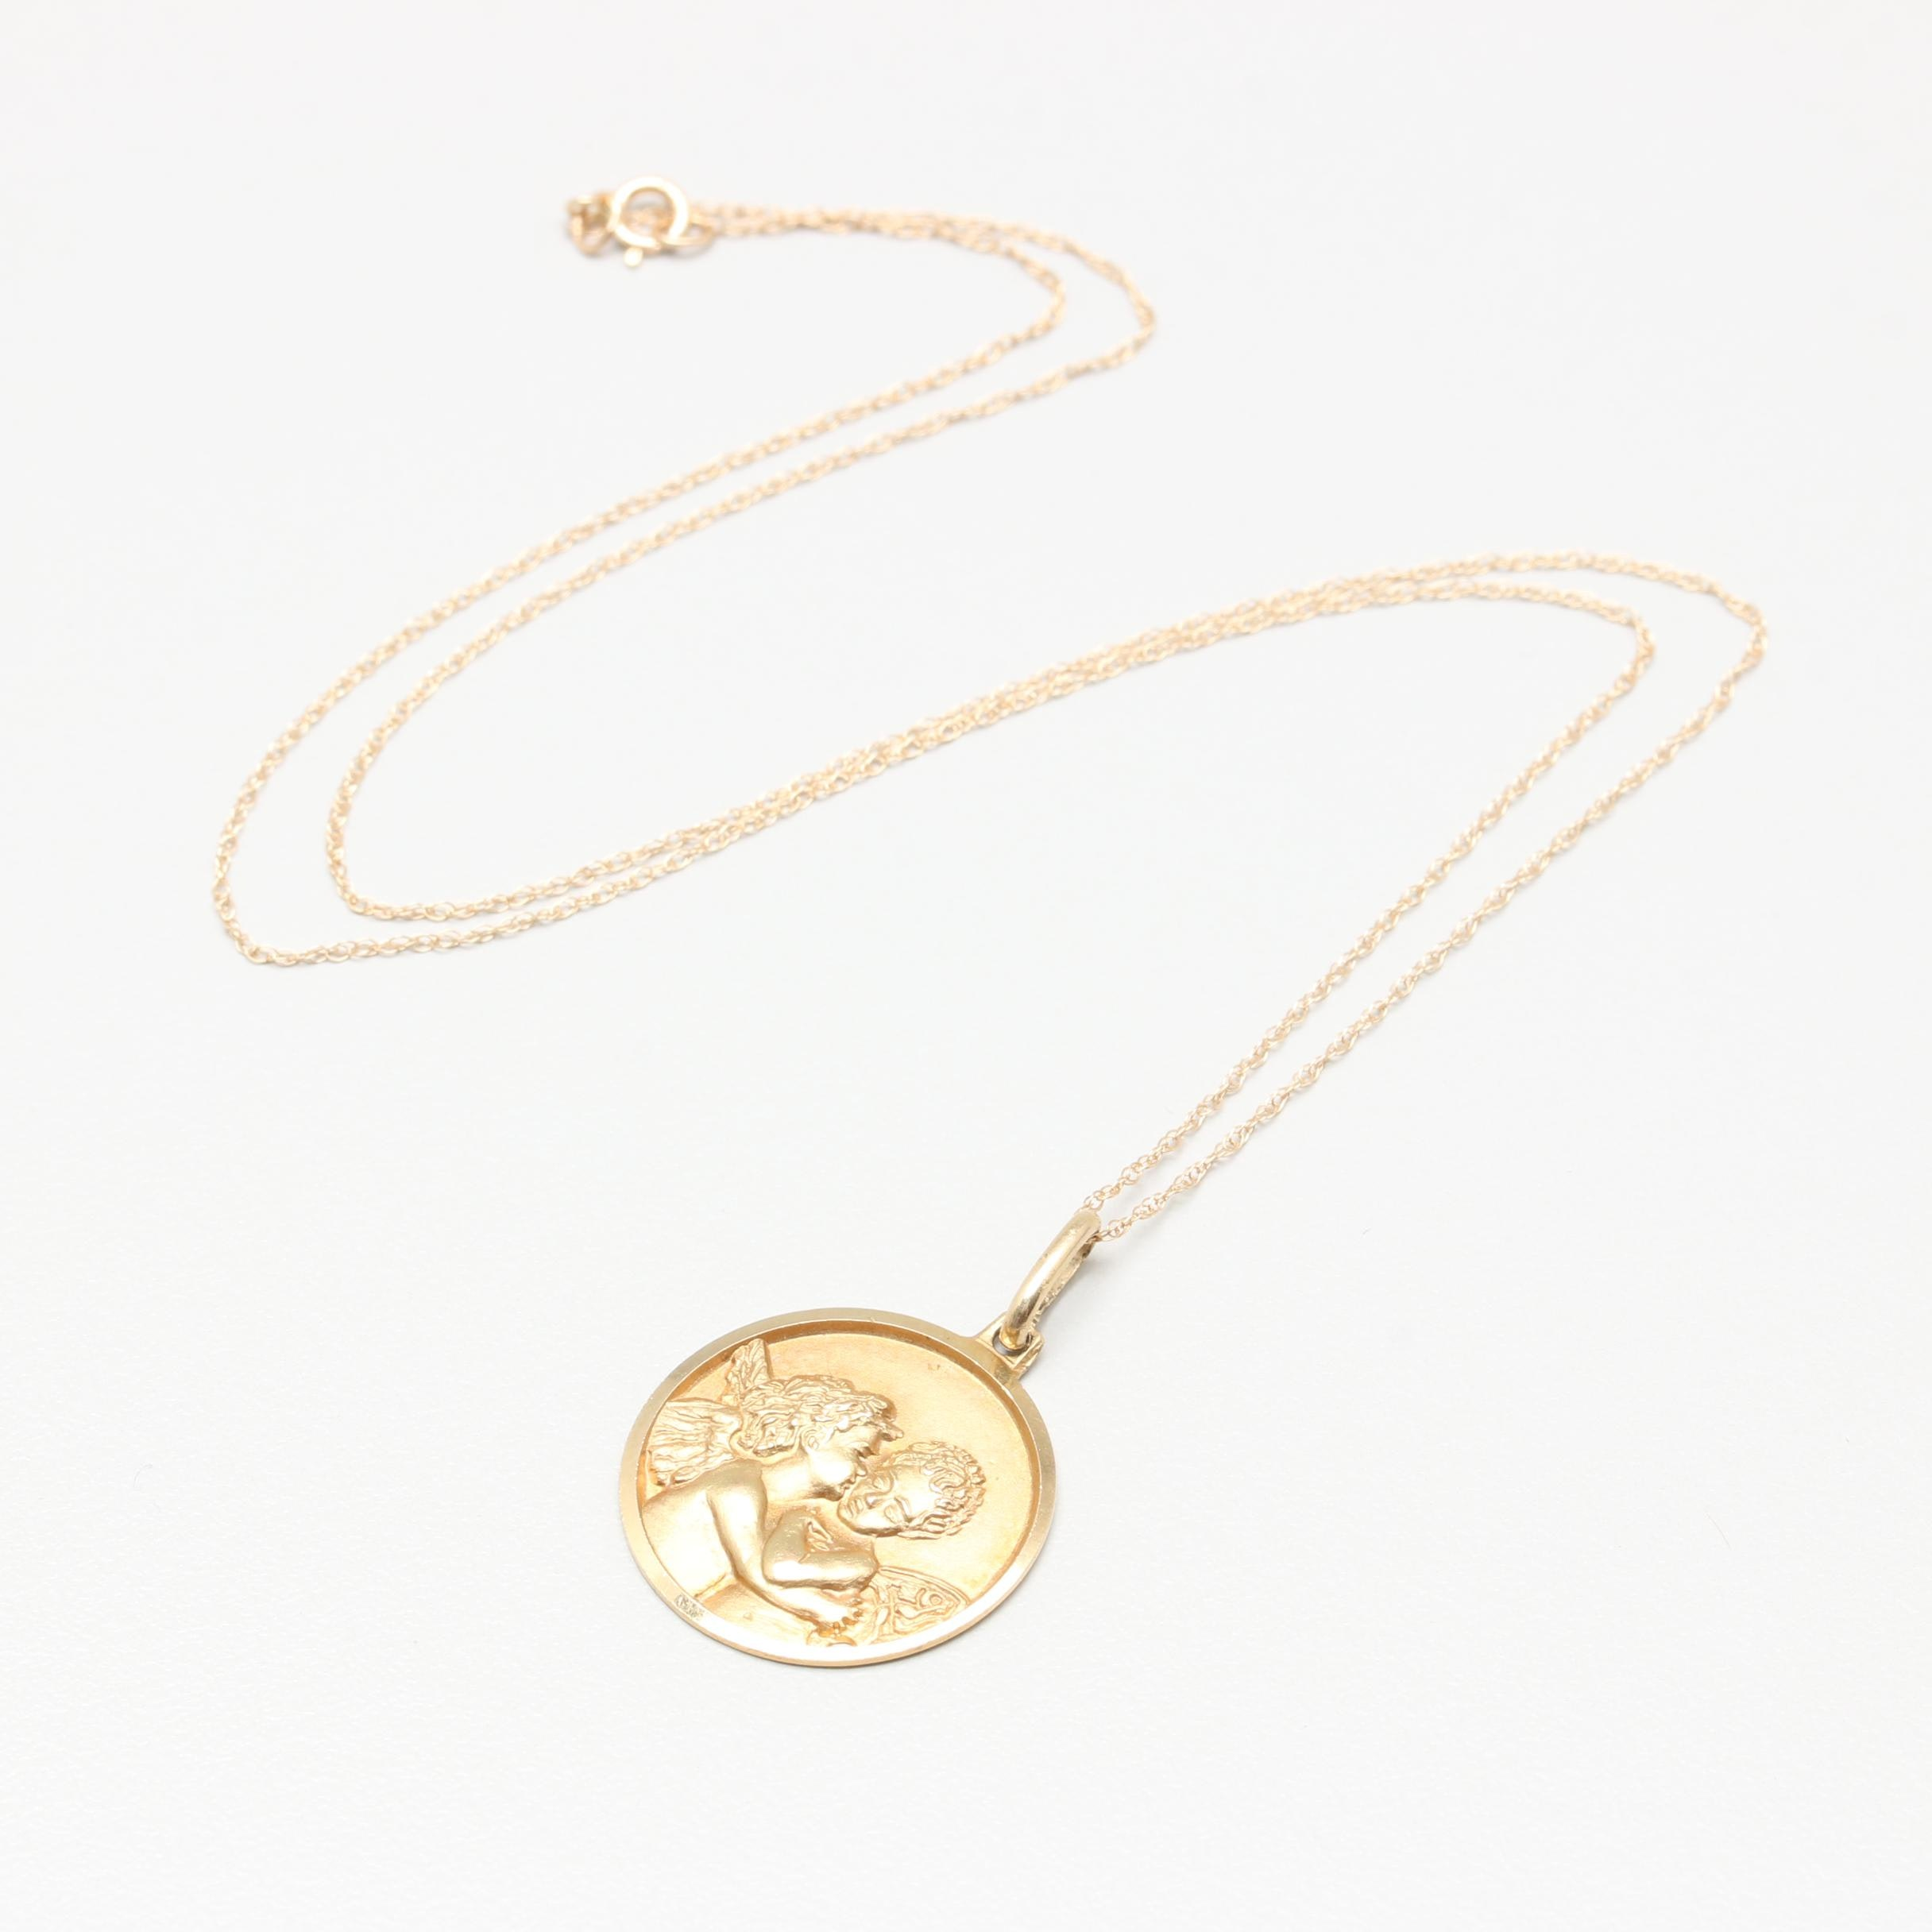 14K Yellow Gold Cupid and Psyche Medallion Necklace